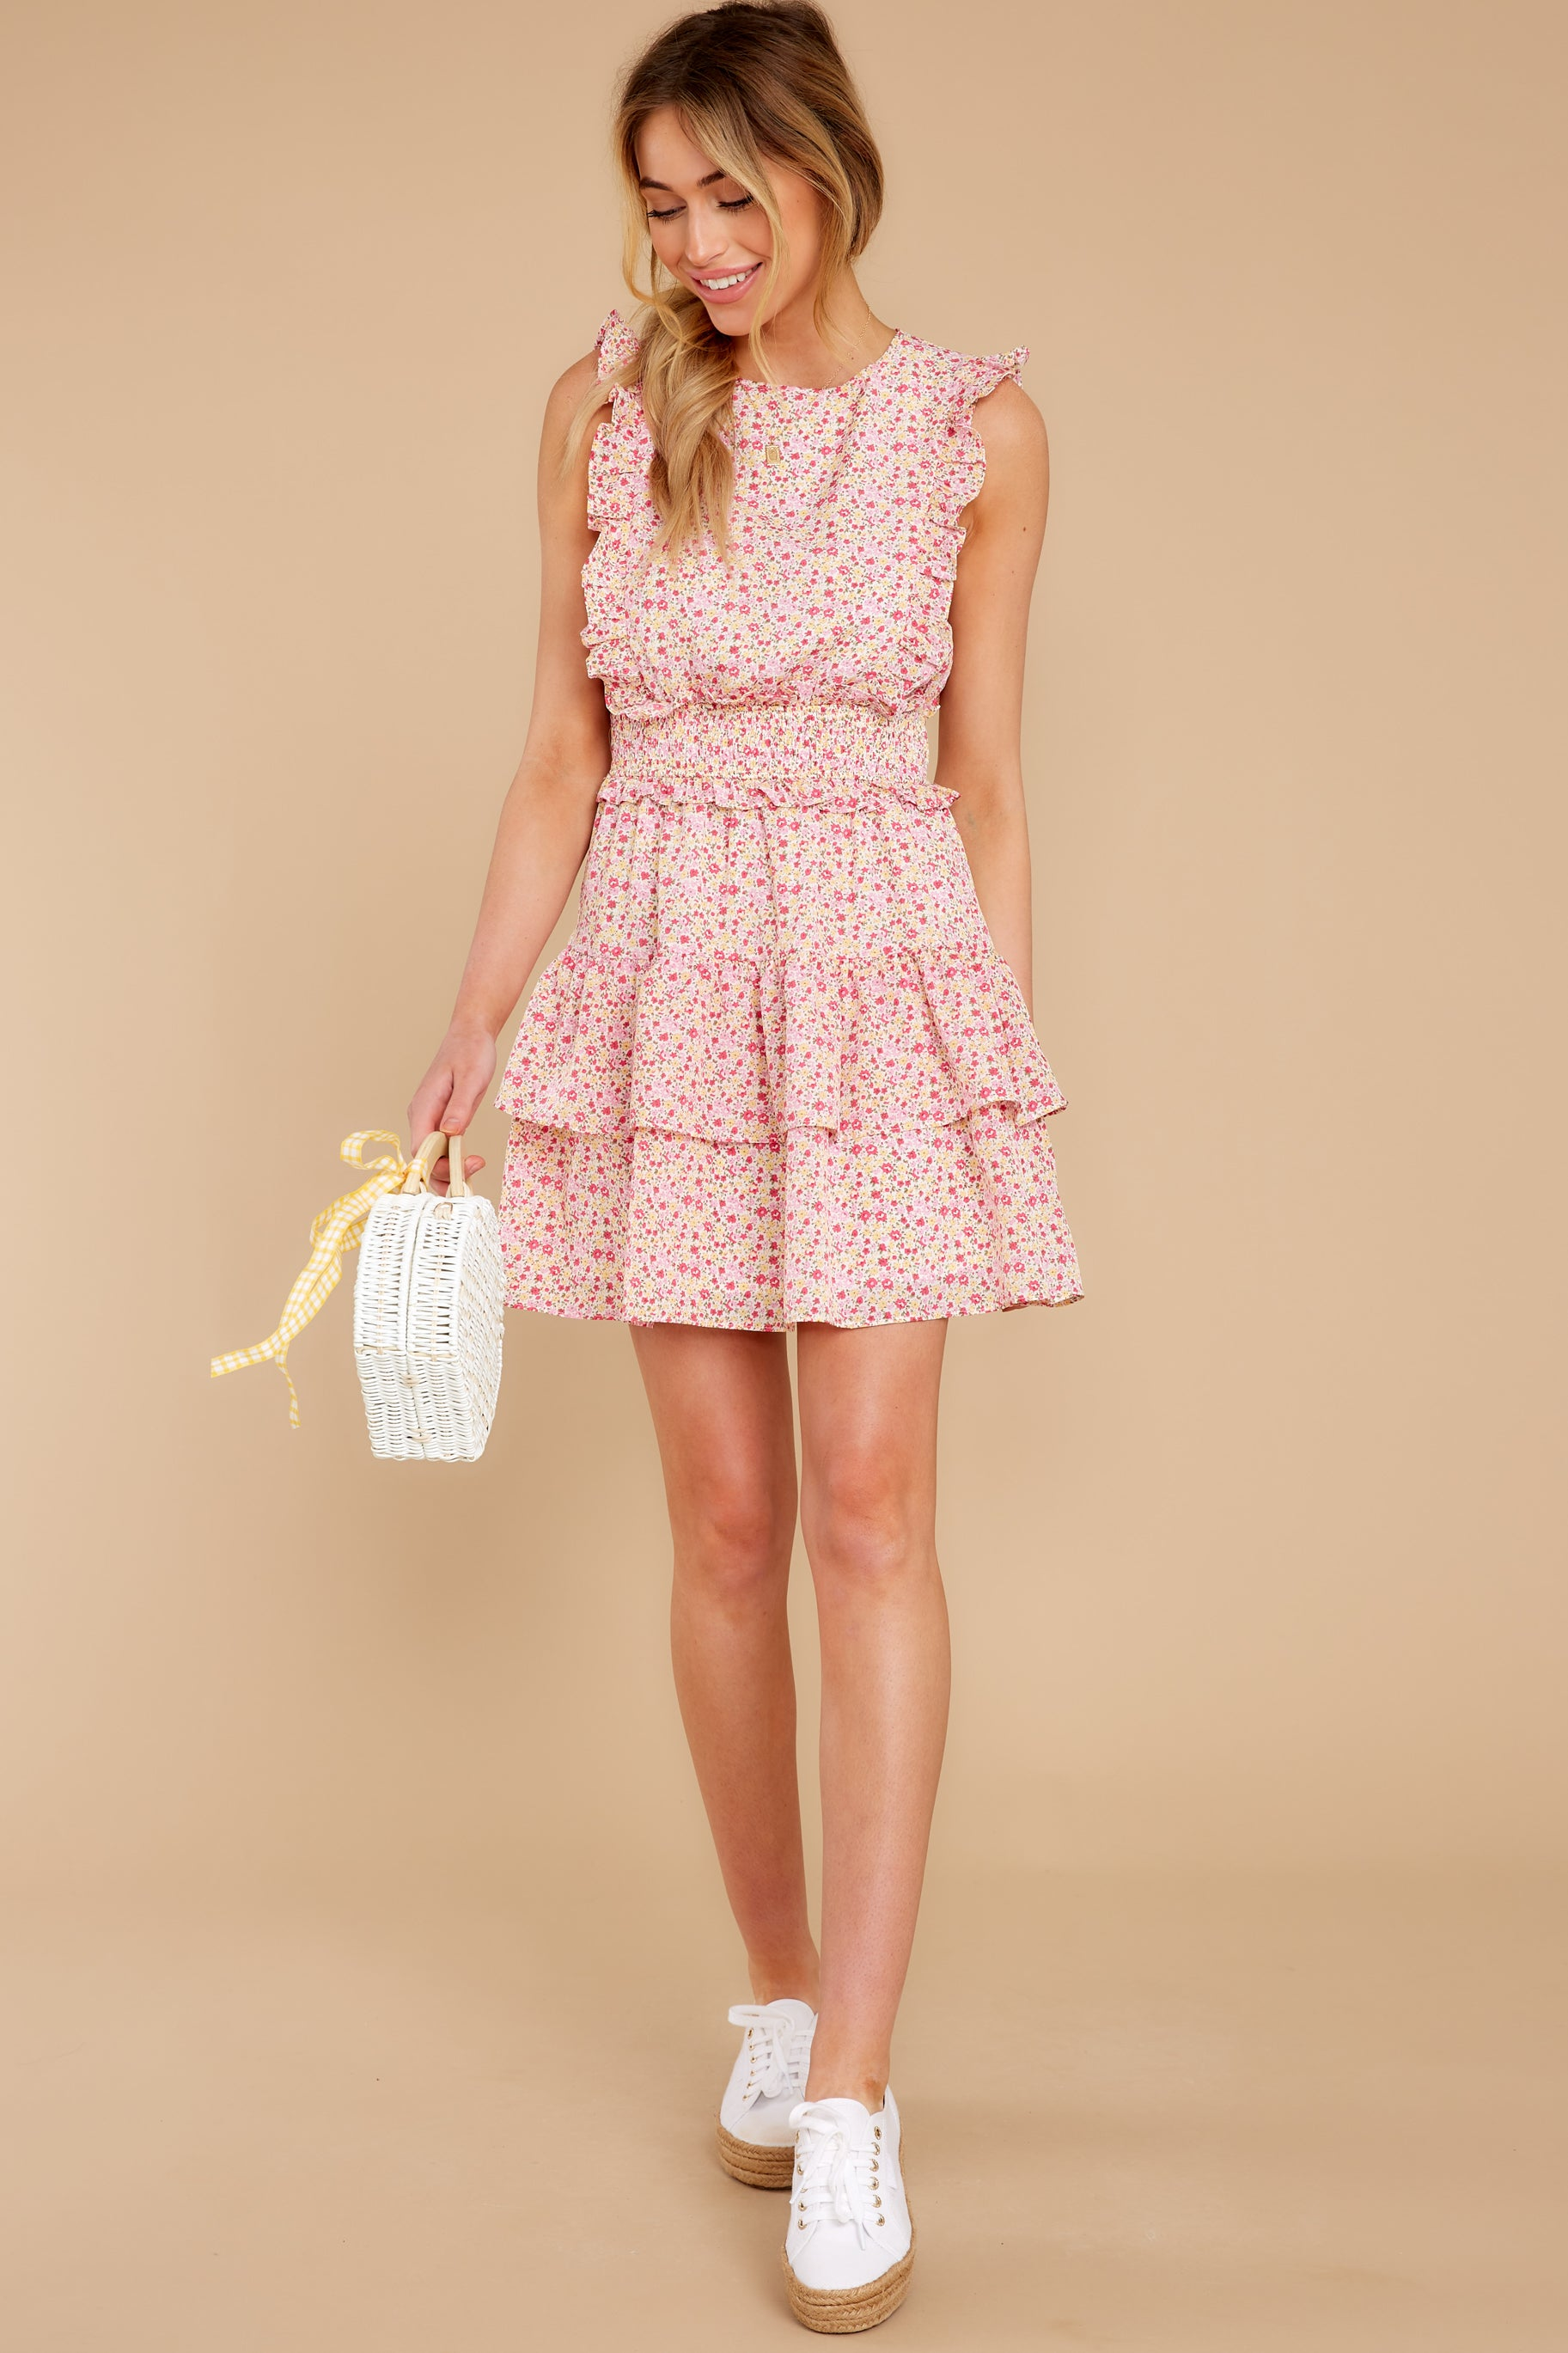 4 Spin Me Baby Pink Multi Floral Print Dress at reddress.com